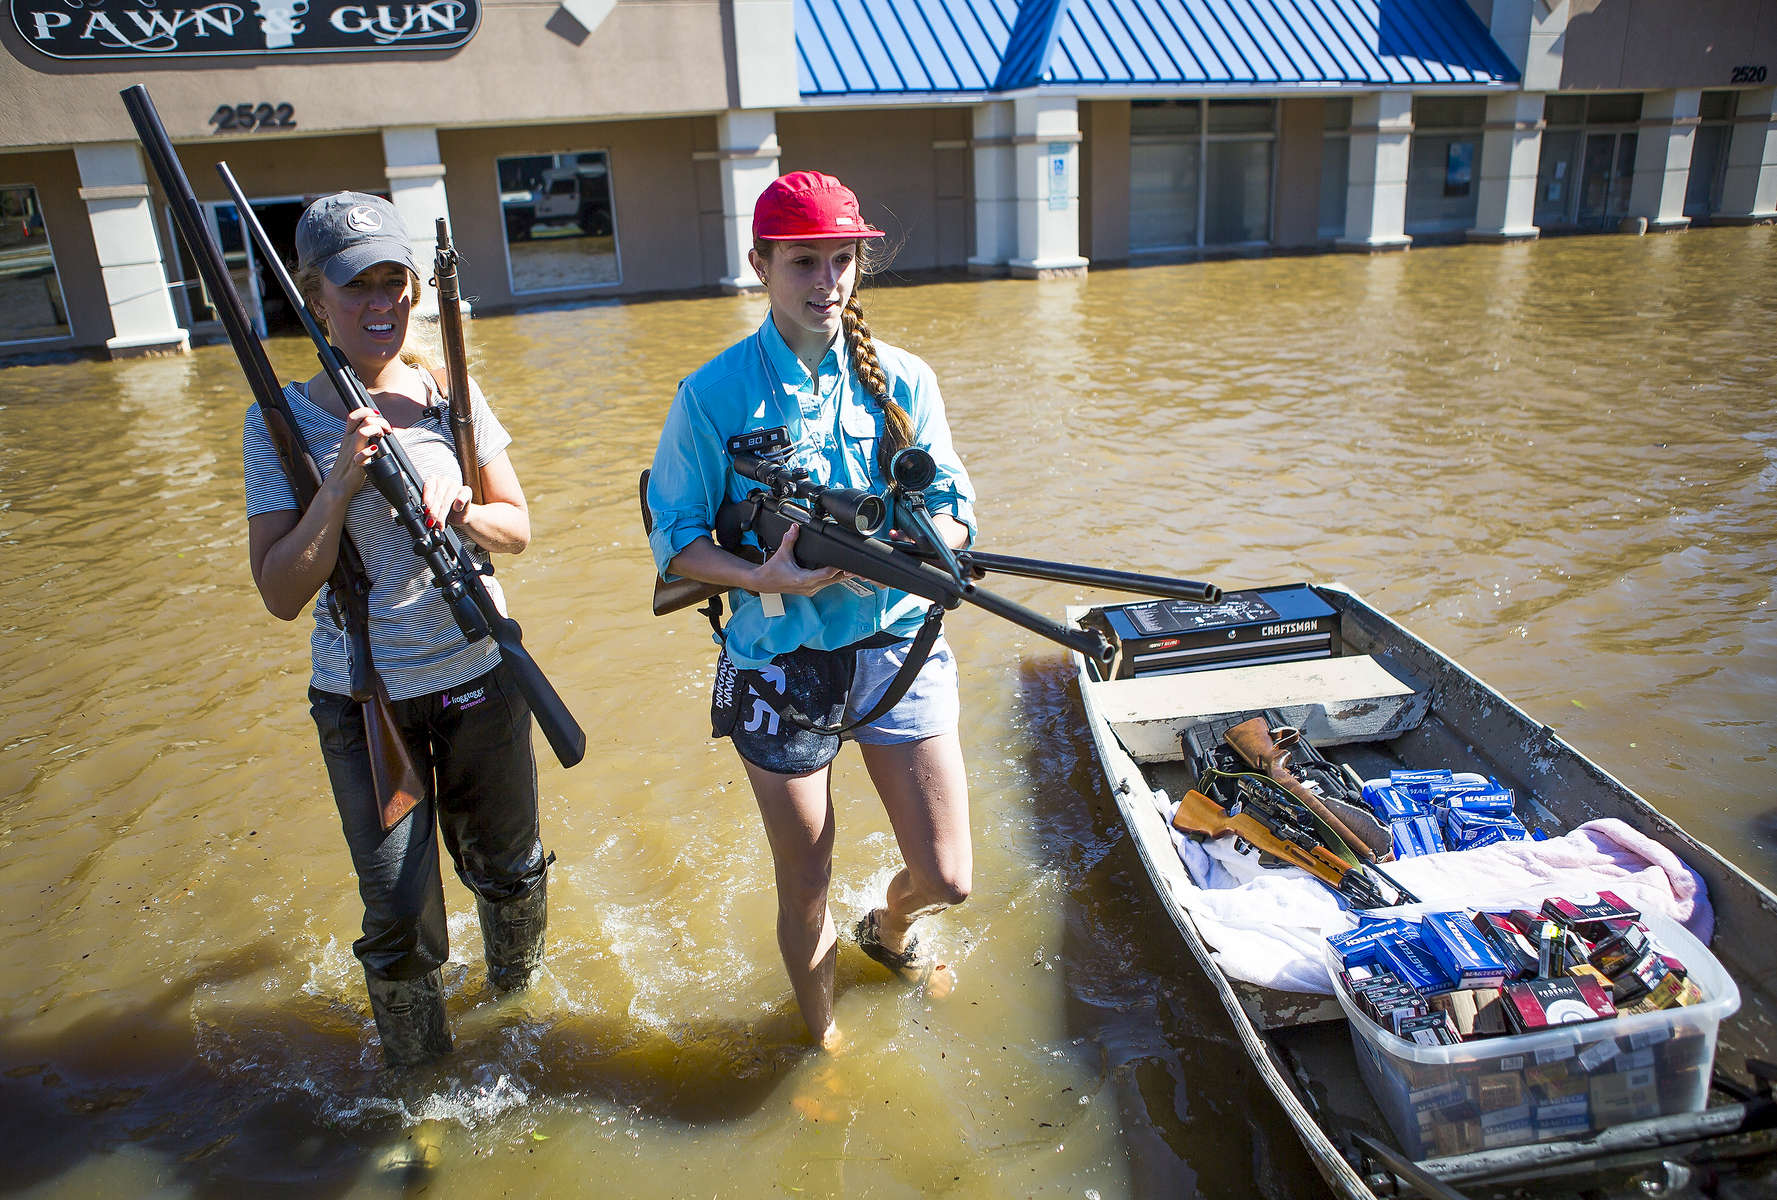 POY: Runner UpMadeline Gray, North State Journal Alex Flora, left, of Nashville, and Kathryn Hicks, right, of Rocky Mount, help to clear merchandise out of Carolina Jewelry, Pawn & Gun in Rocky Mount after it flooded as a result of heavy rains from Hurricane Matthew.